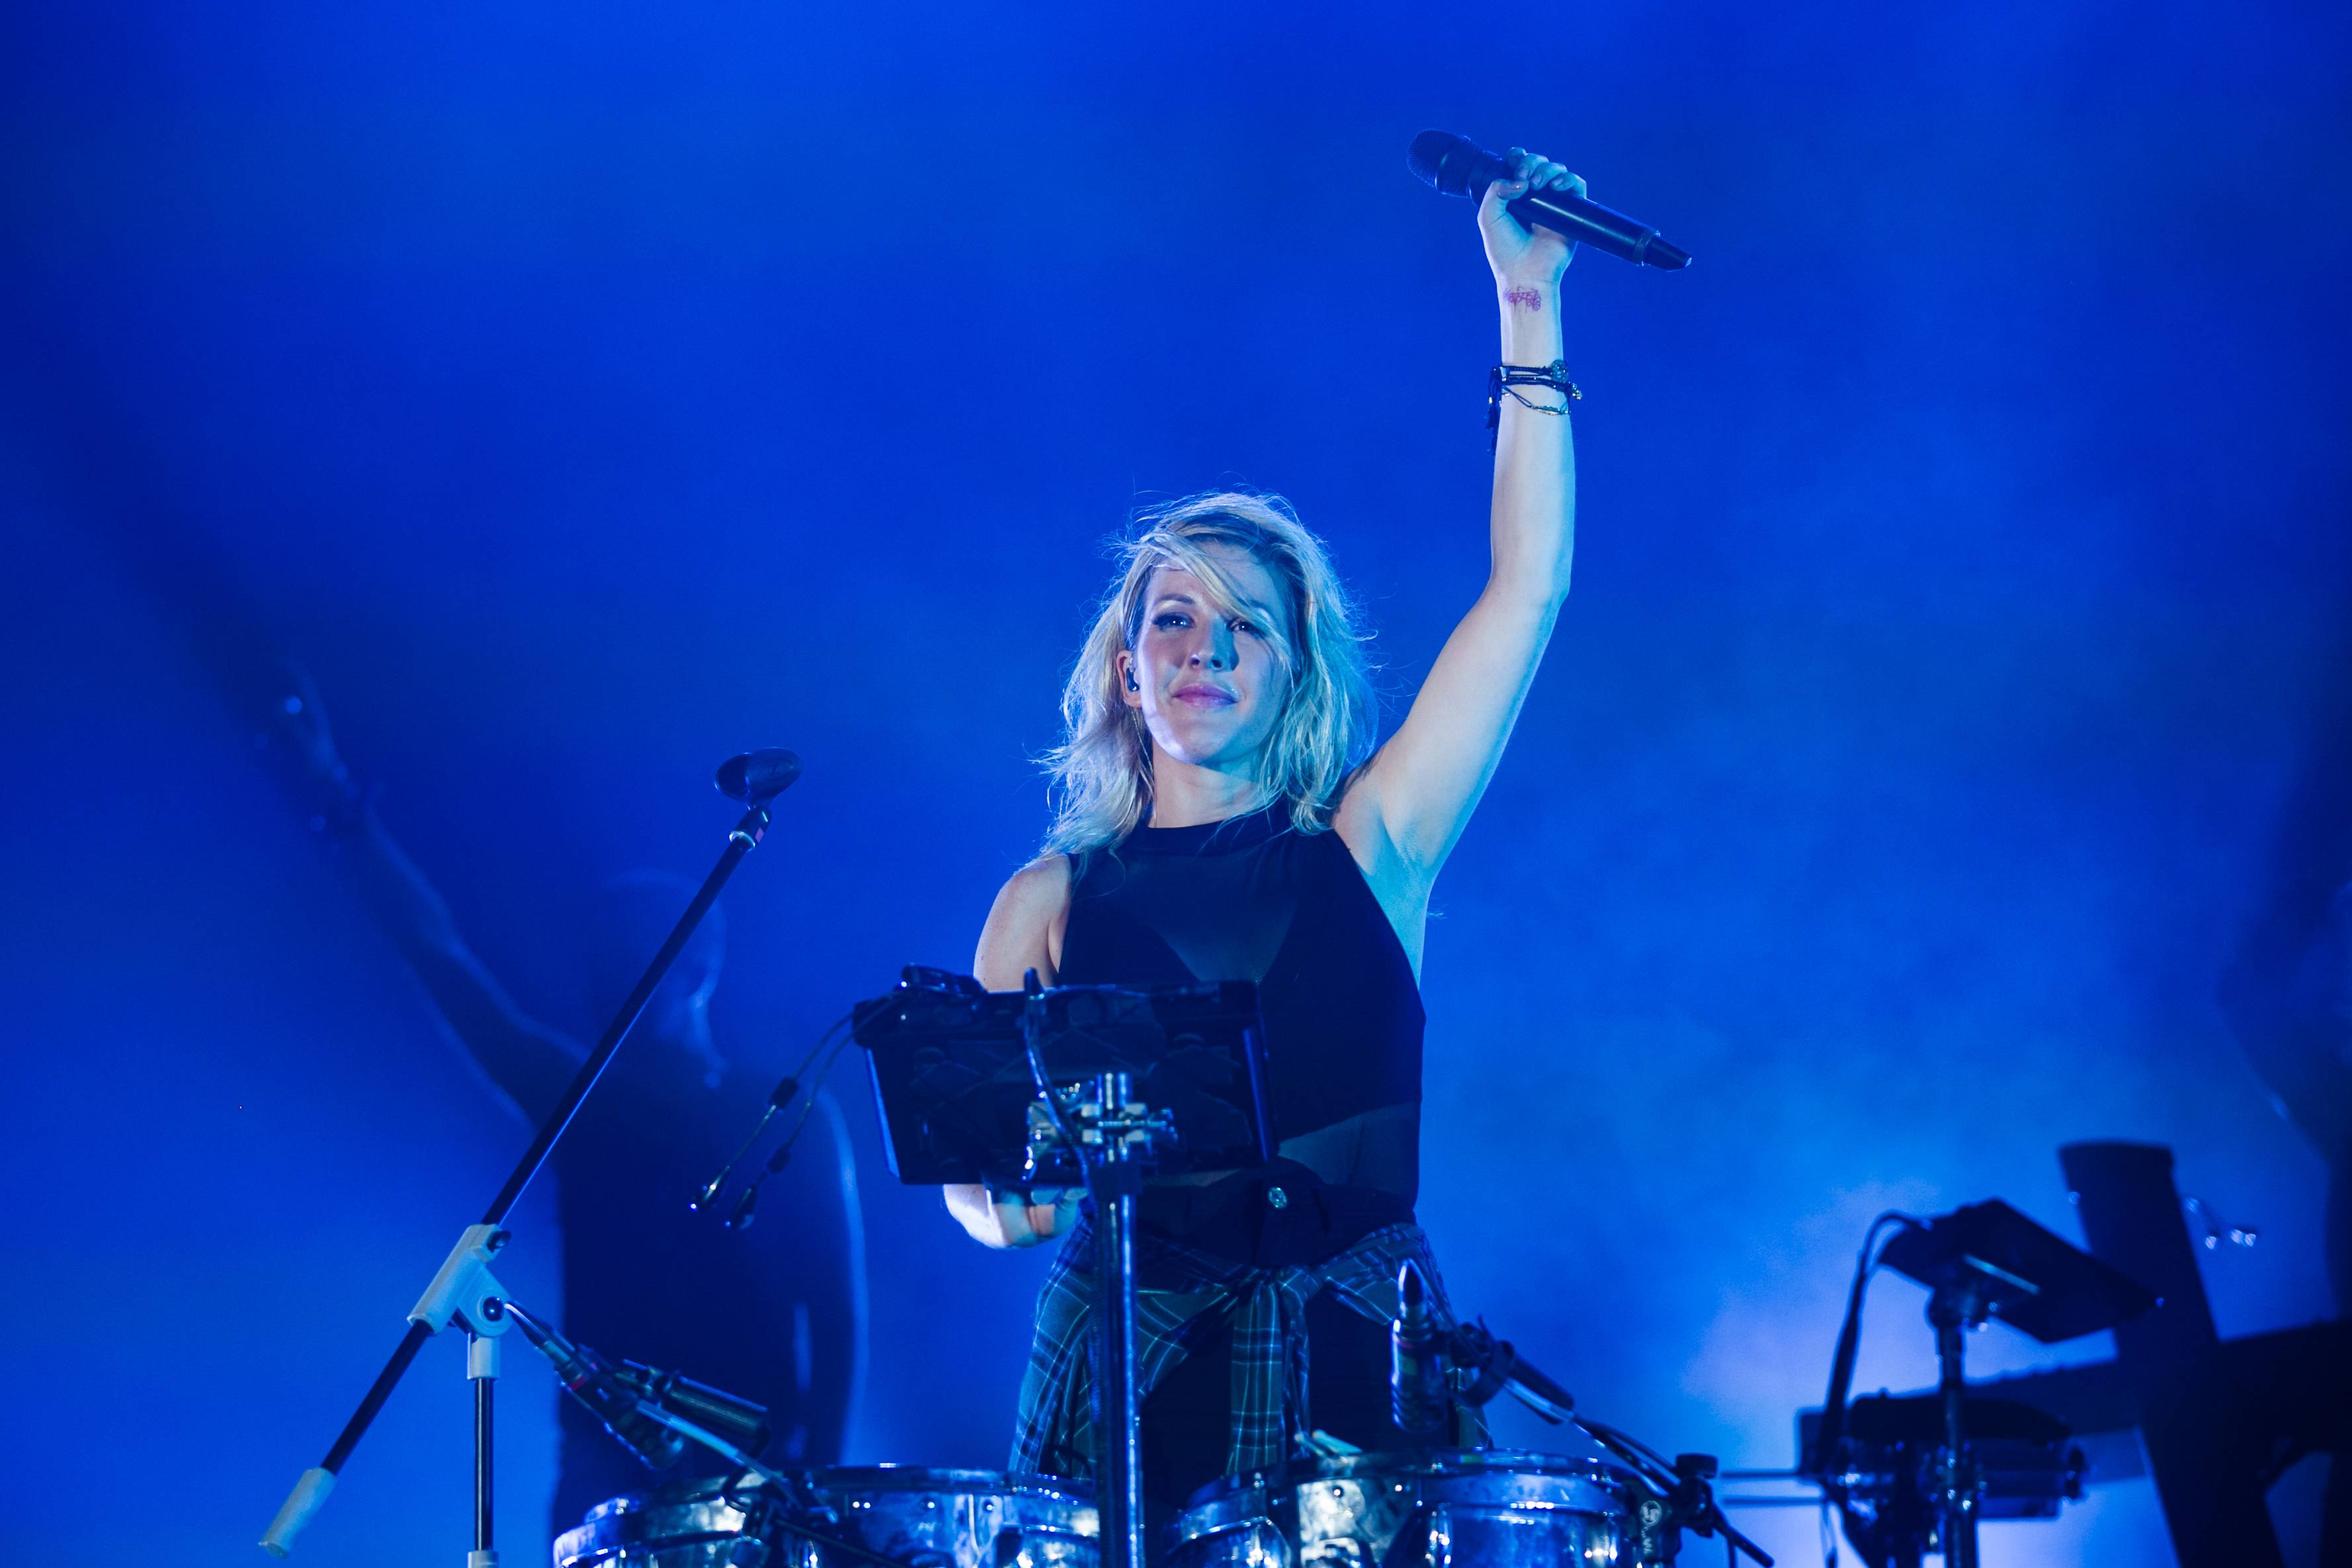 Ellie Goulding closed the night to a 8000-strong crowd.